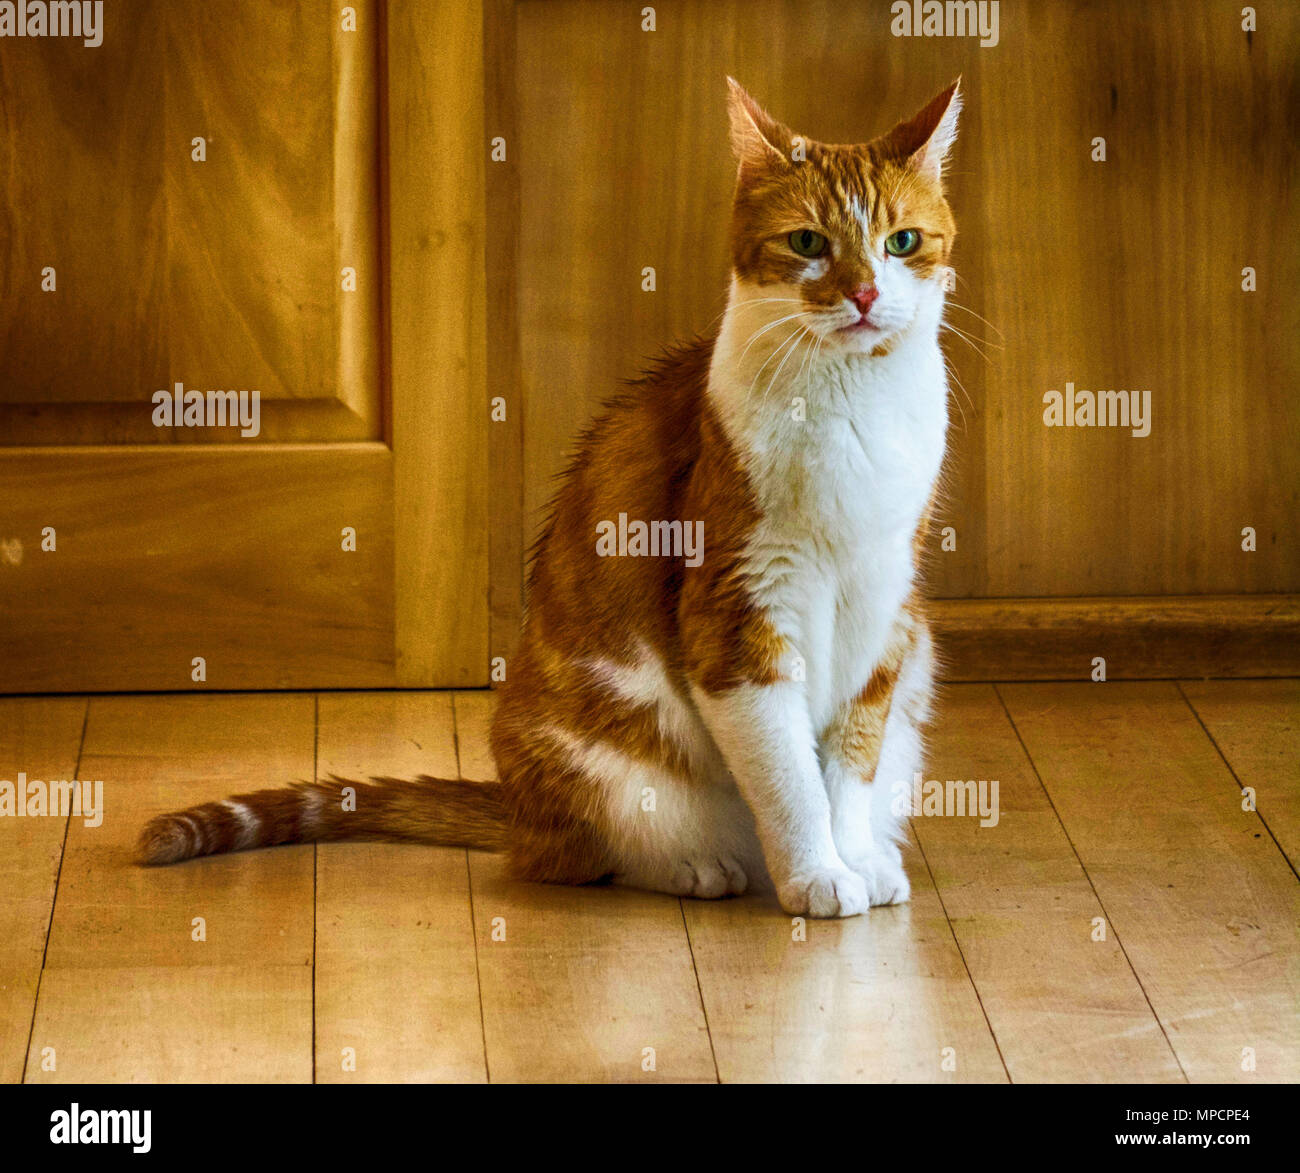 This feline was just thinking of what to do next. - Stock Image